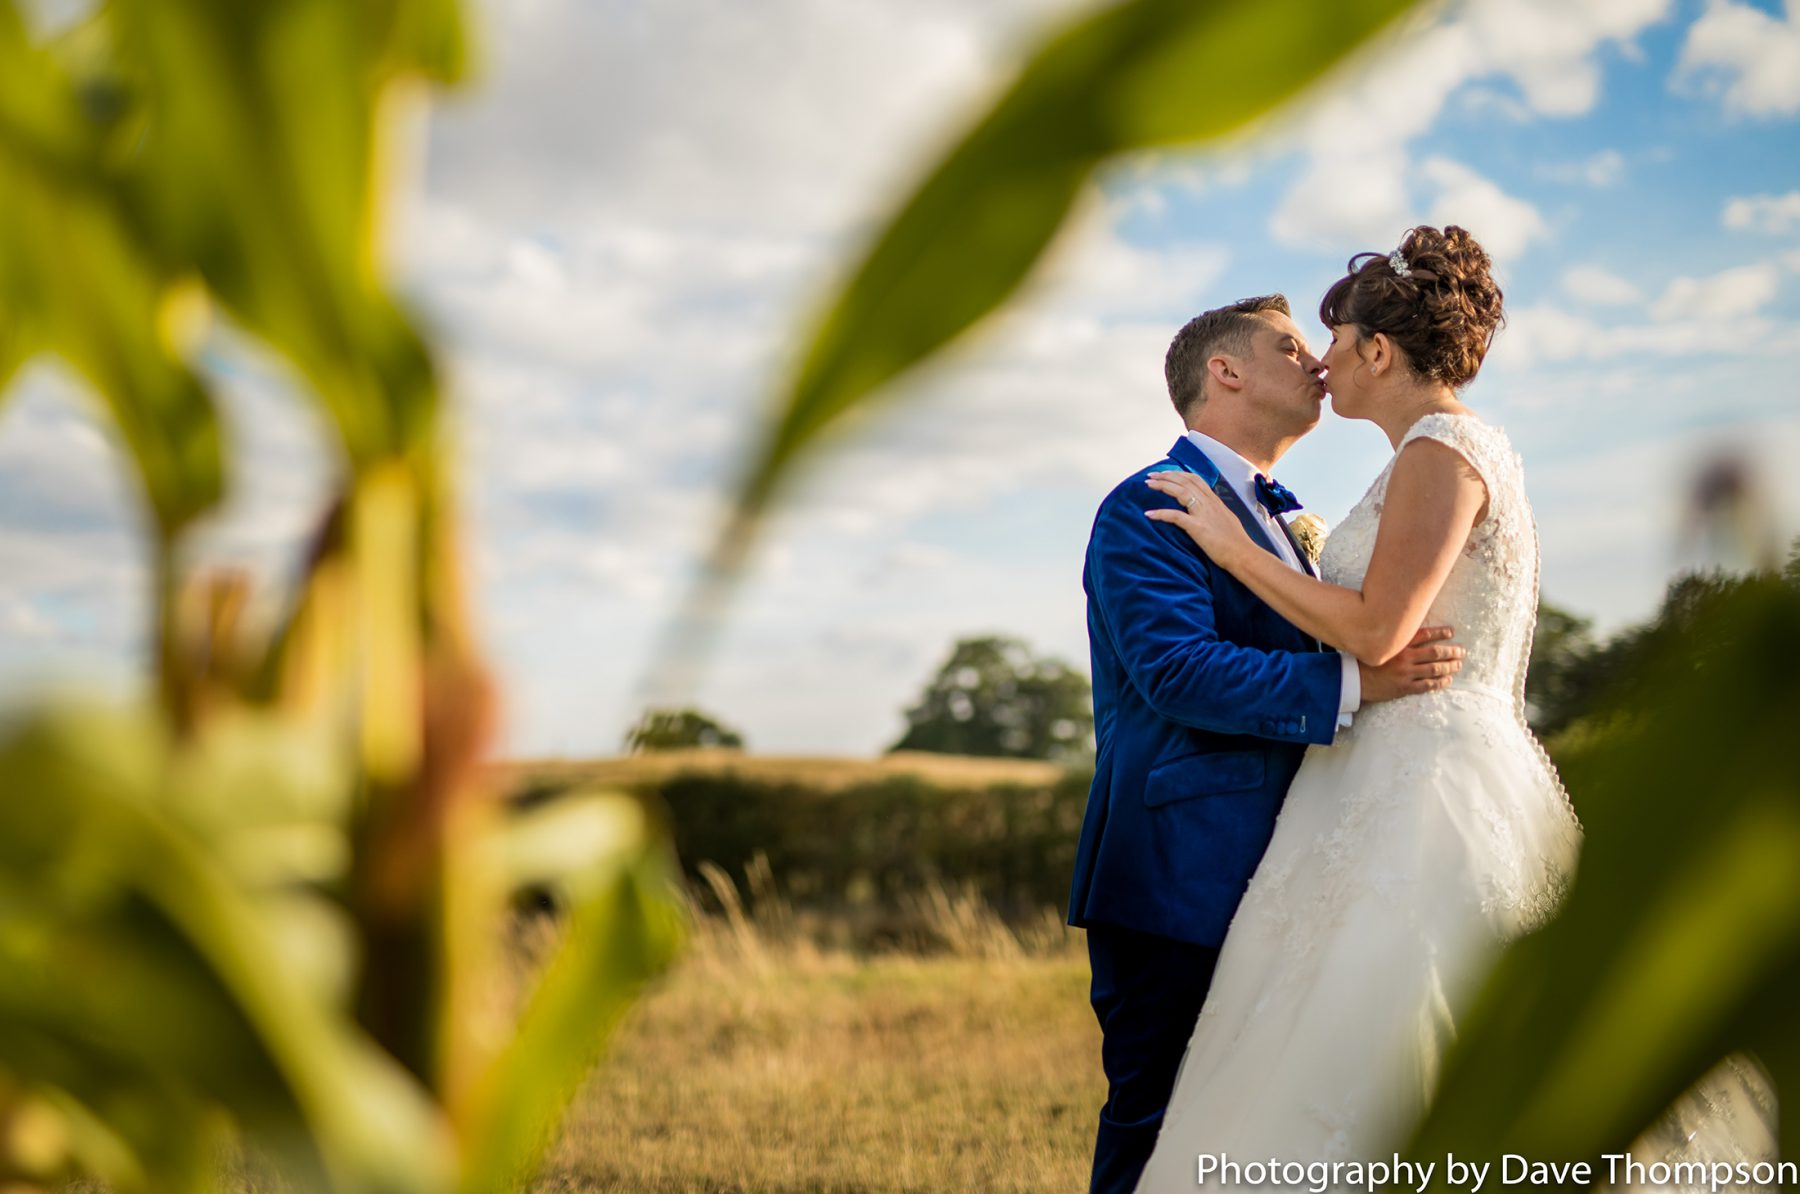 The bride and groom together in a corn field at Sandhole Oak Barn